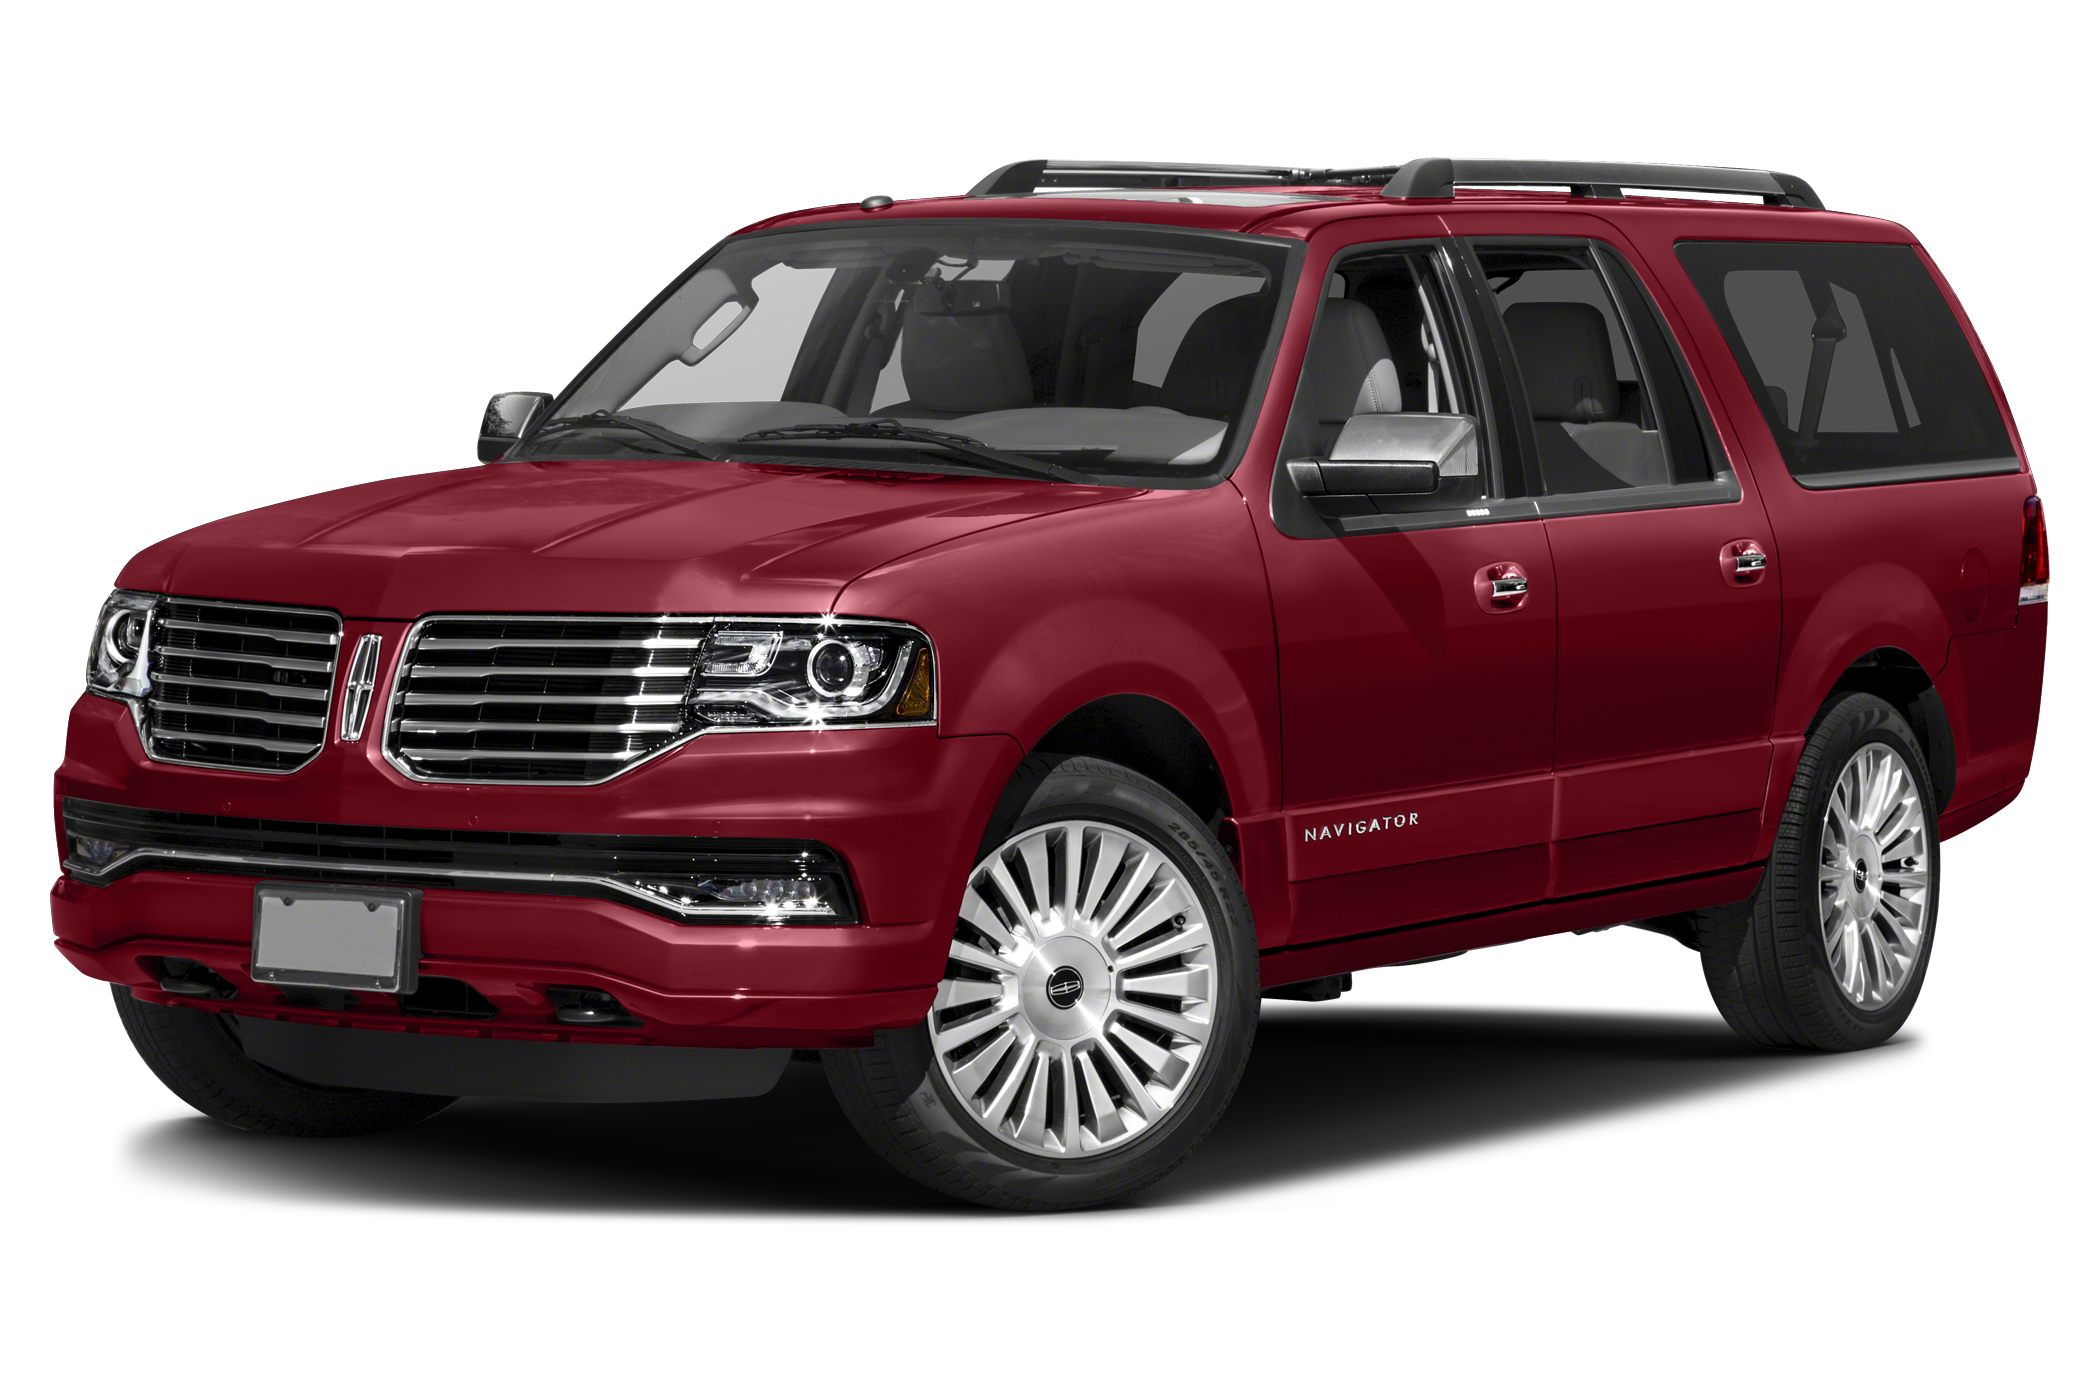 2015 Lincoln Navigator L SUV for sale in Margate for $66,330 with 19 miles.